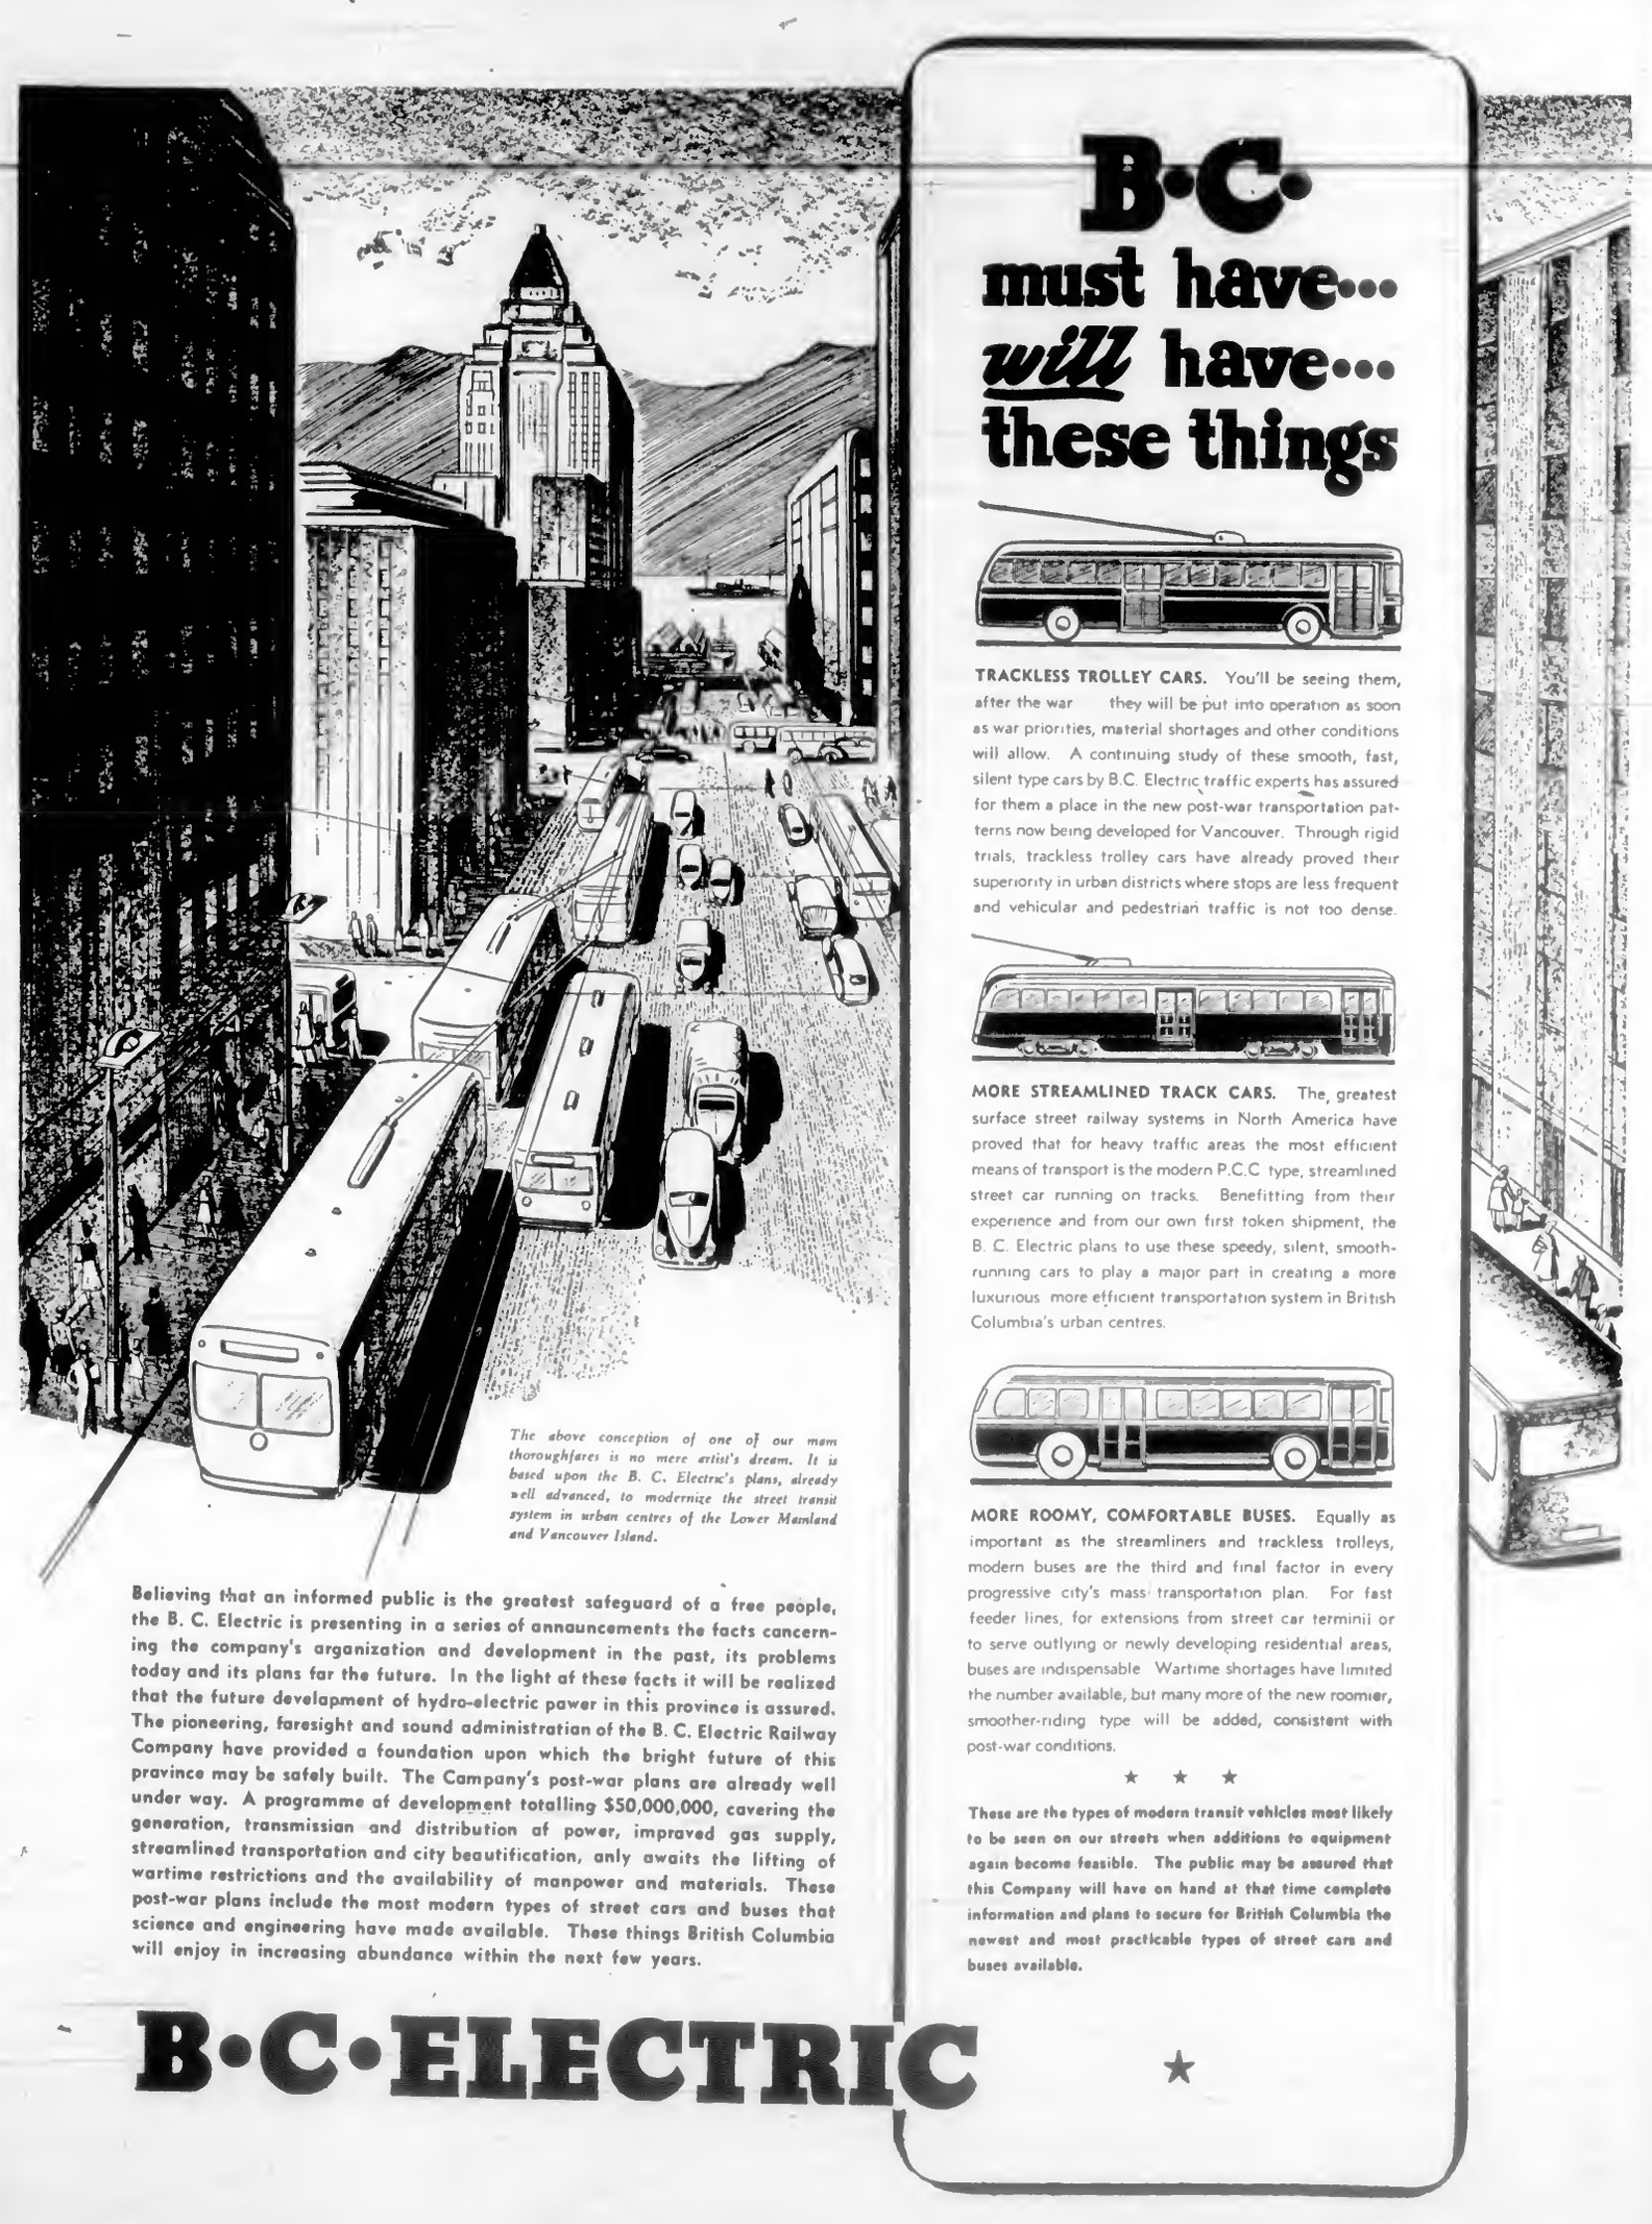 1944 advertisement from B.C. Electric (the forerunner to BC Hydro and BC Transit) showing the buses and streetcars the company was planning to introduce in B.C. cities. (West Coast Driver Training collection)